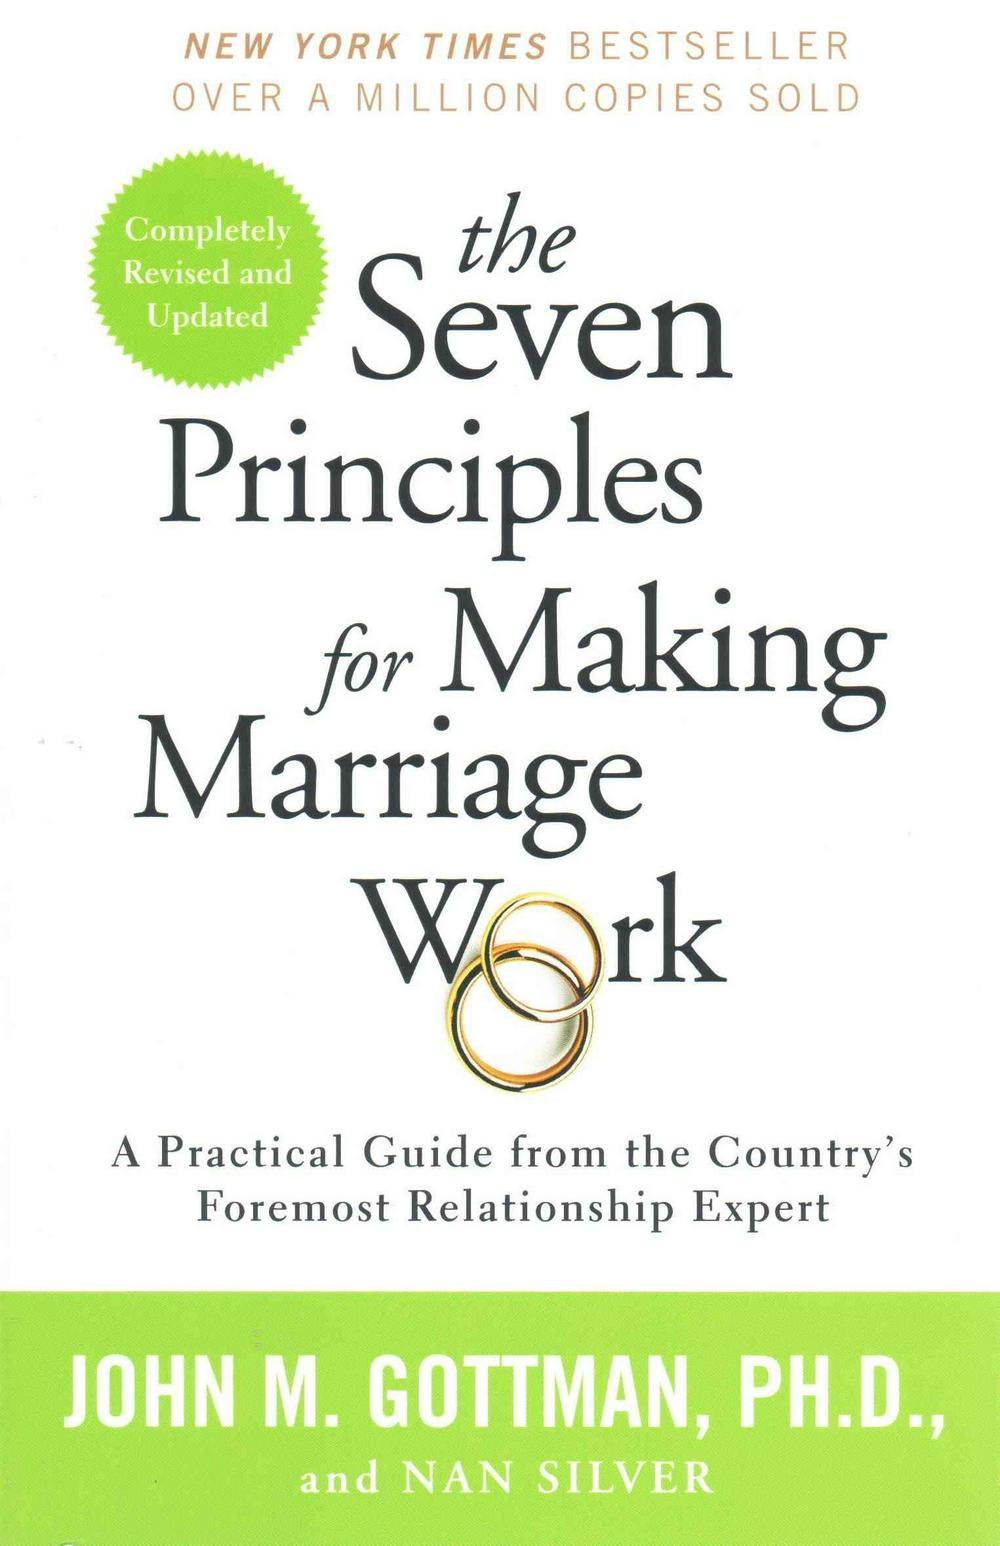 The 7 Principles for Making Marriage Work: A Practical Guide from the Country's Foremost Relationship Expert by John, Ph.D. Gottman, ISBN: 9780553447712